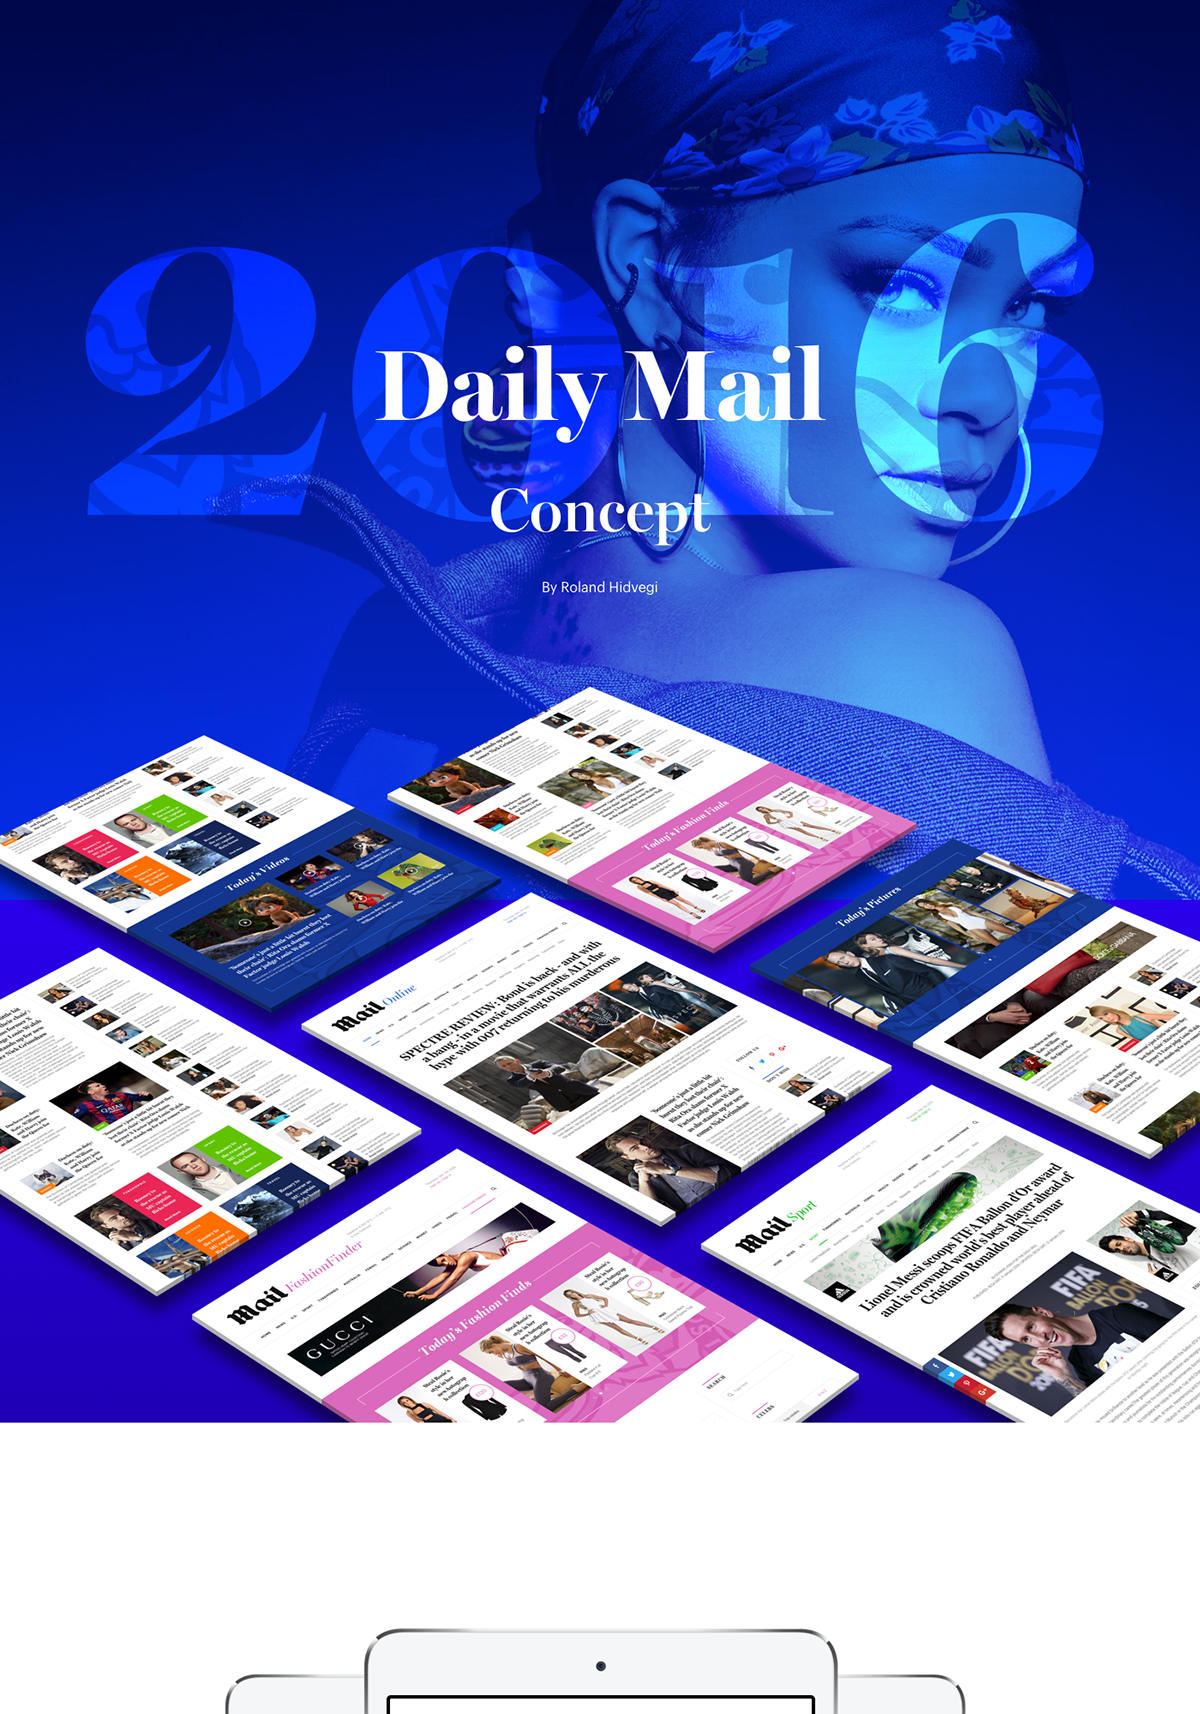 Daily Mail Redesign Concept on App Design Served